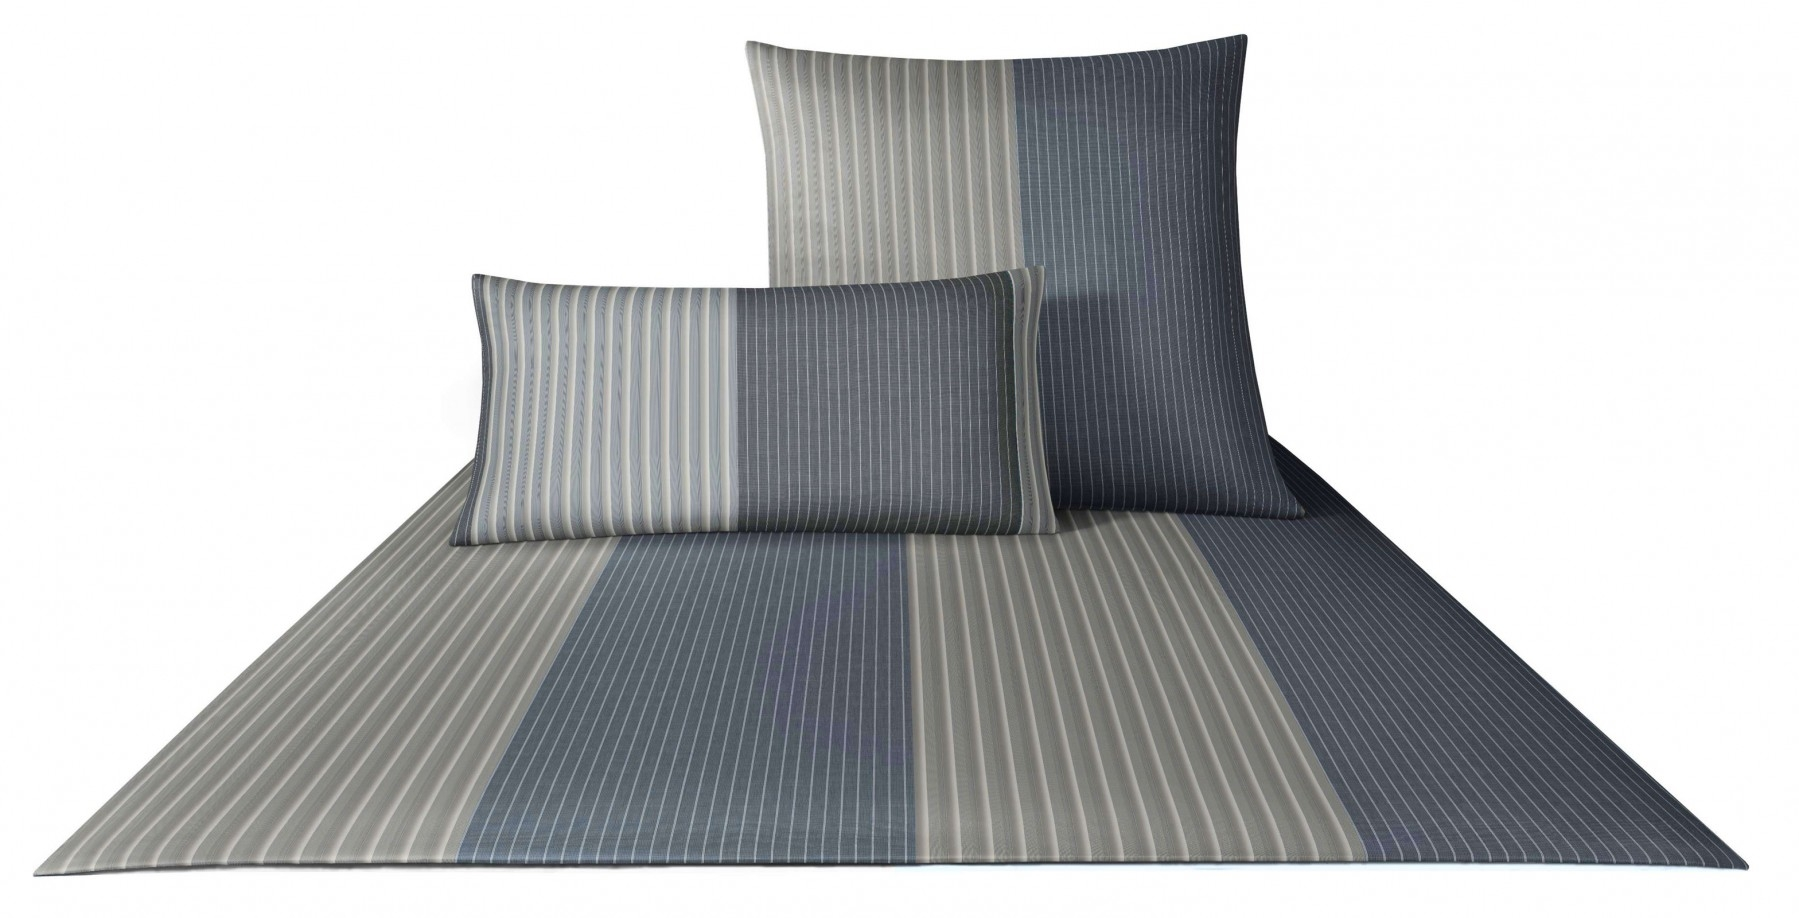 Bettwäsche - 4tlg. Joop Mako Satin Bettwäsche Double Stripes 155x220 4054 9  - Onlineshop PremiumShop321